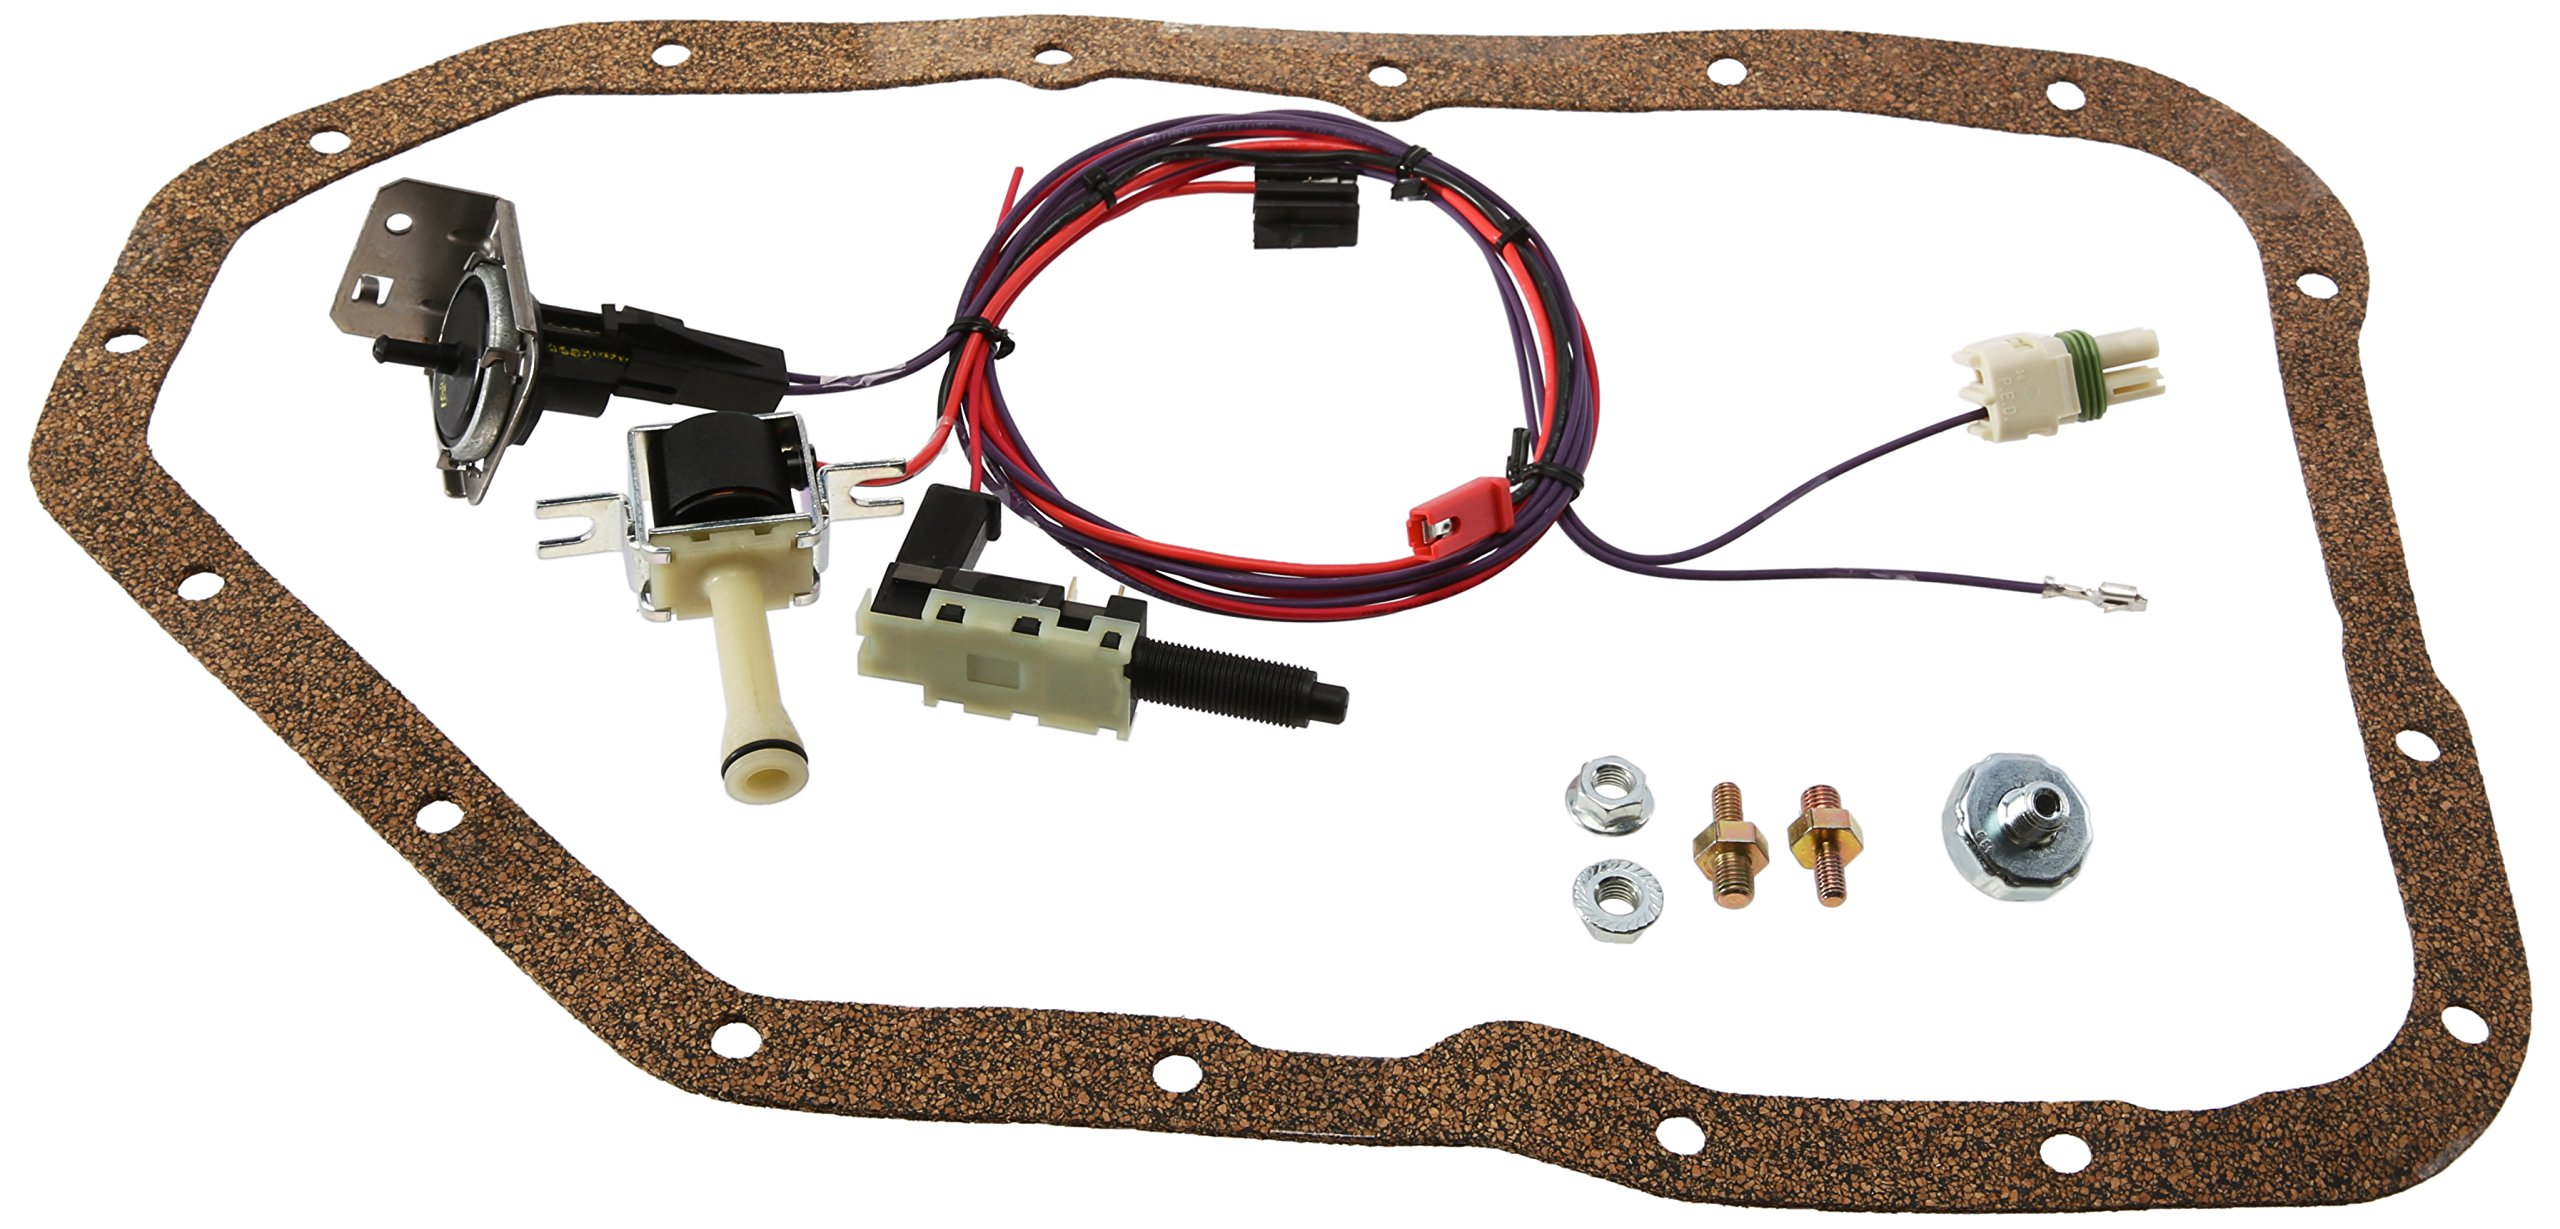 Painless 60110 Transmission Torque Converter Lock-Up Kit by Painless